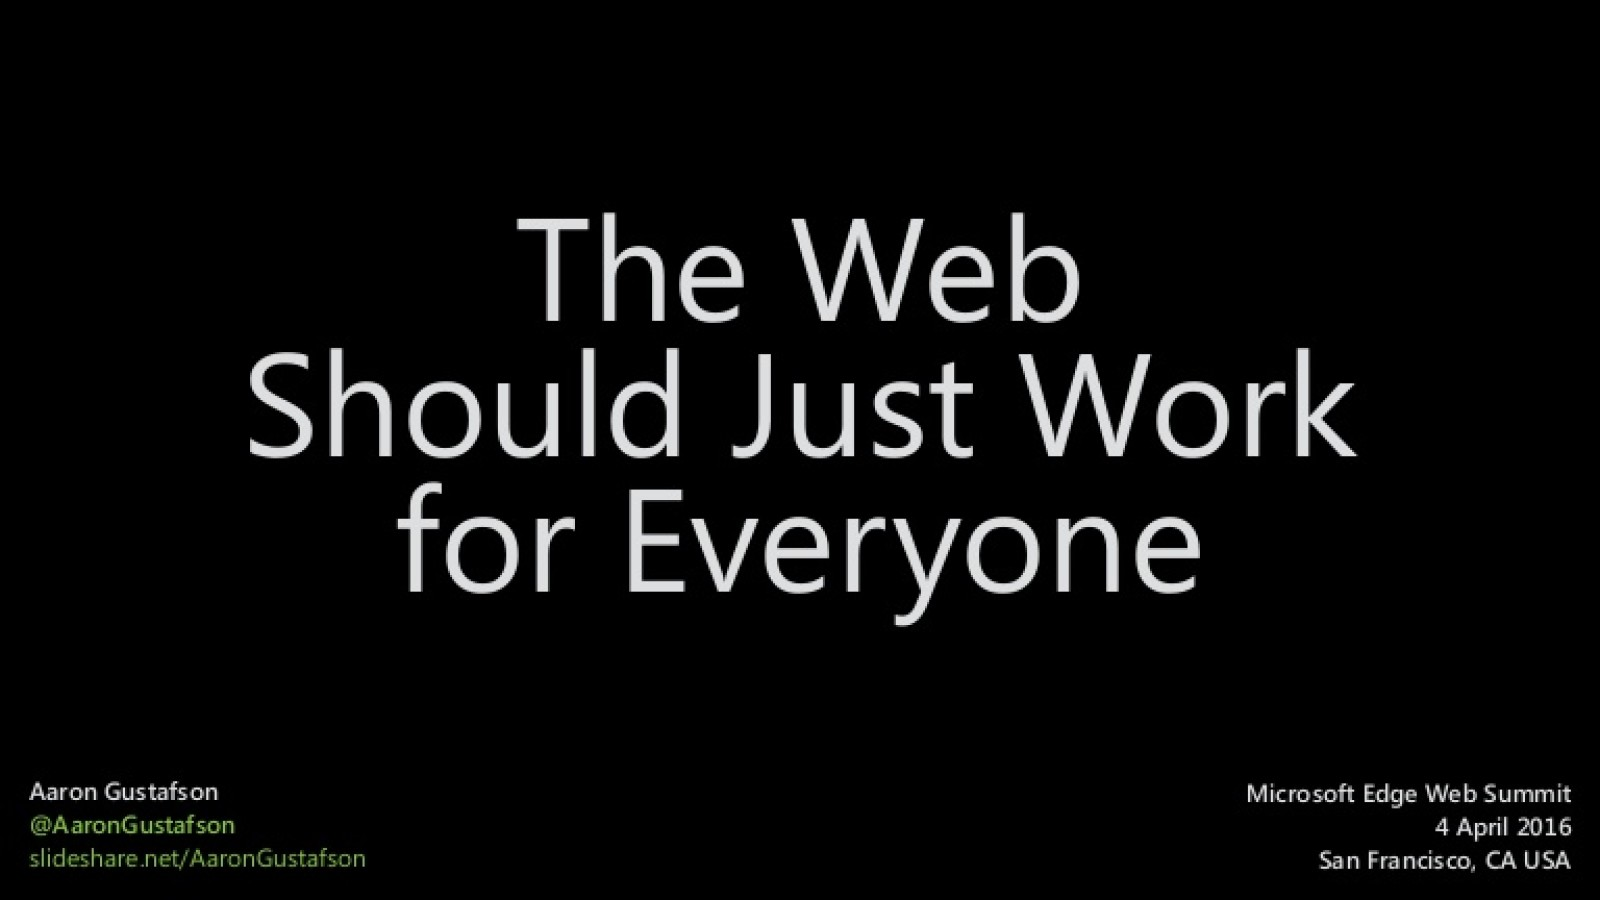 The Web Should Just Work for Everyone